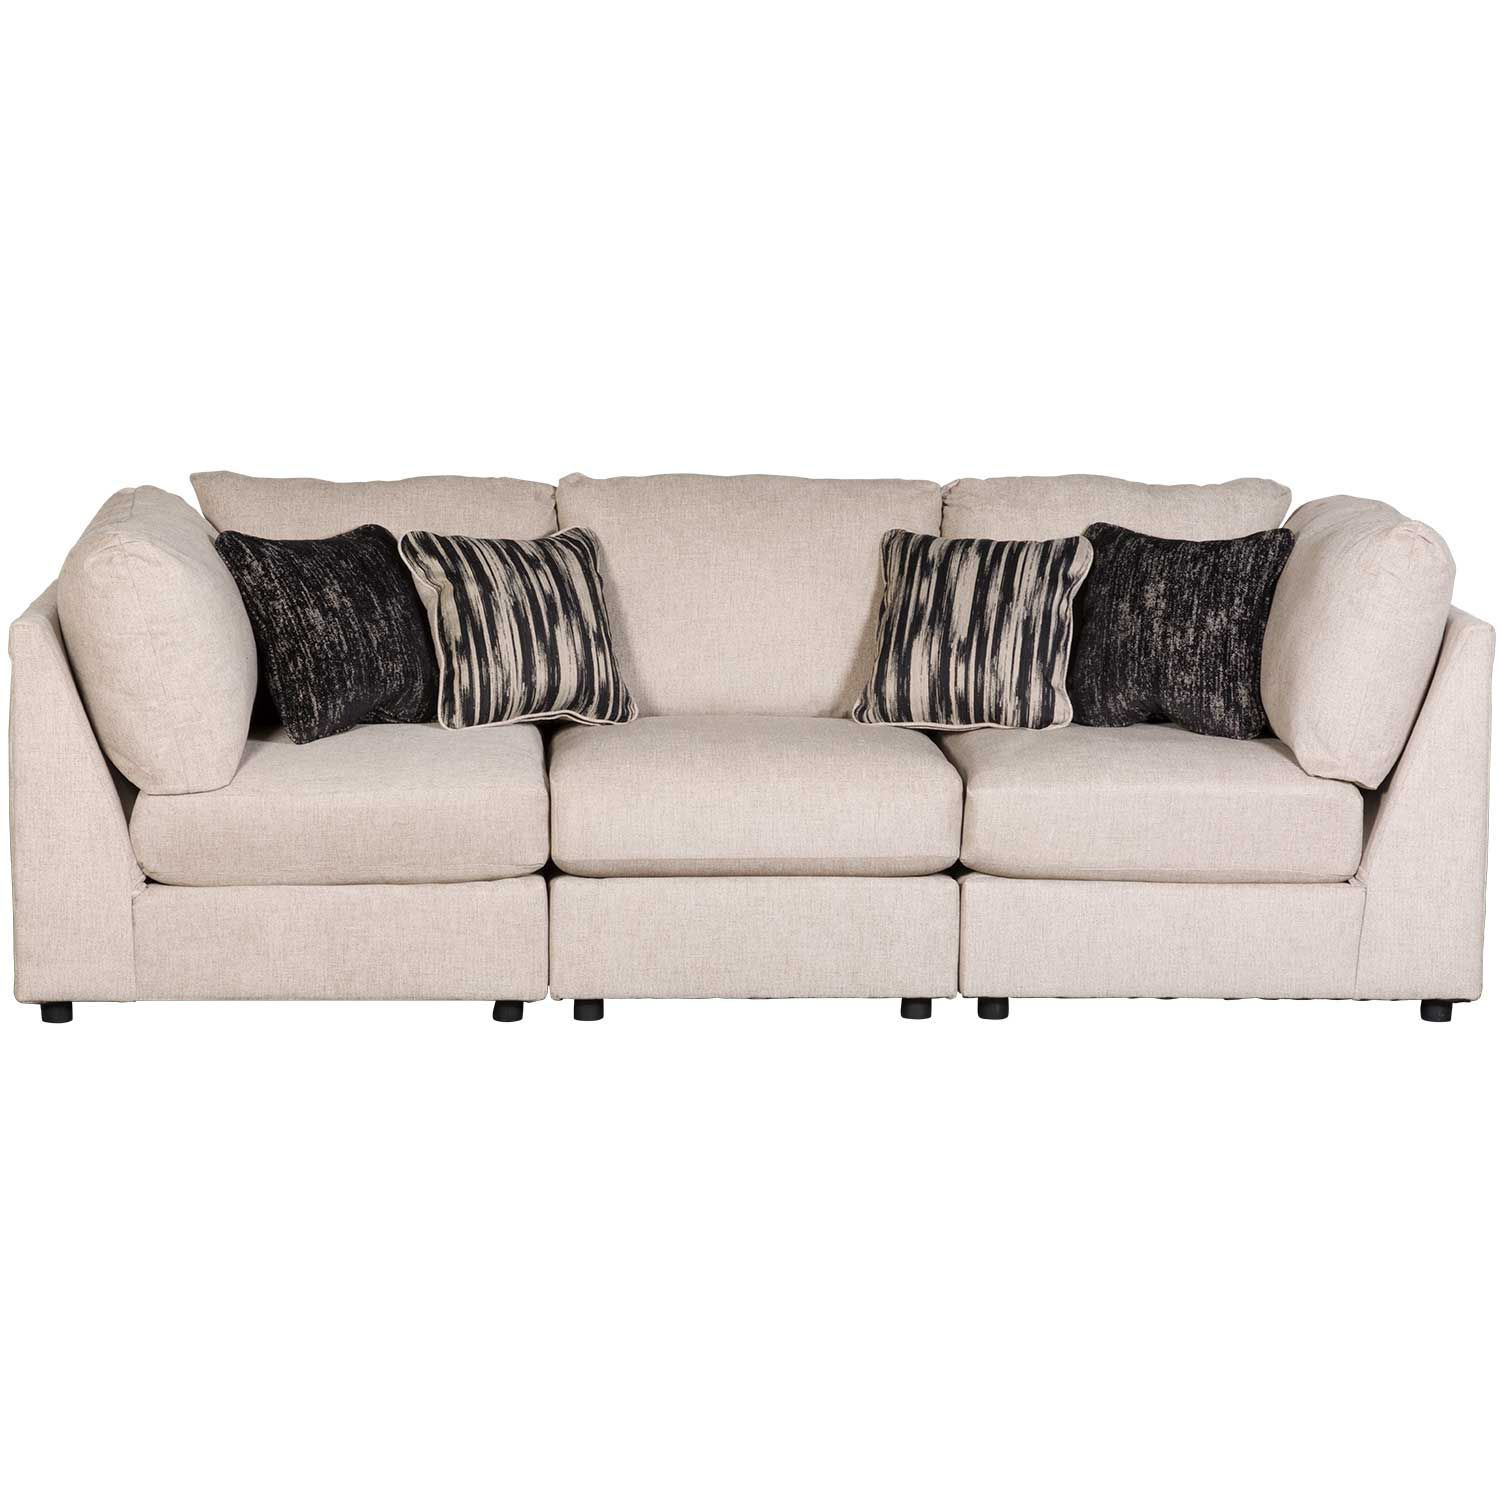 Picture of Kellway 3 Piece Sofa